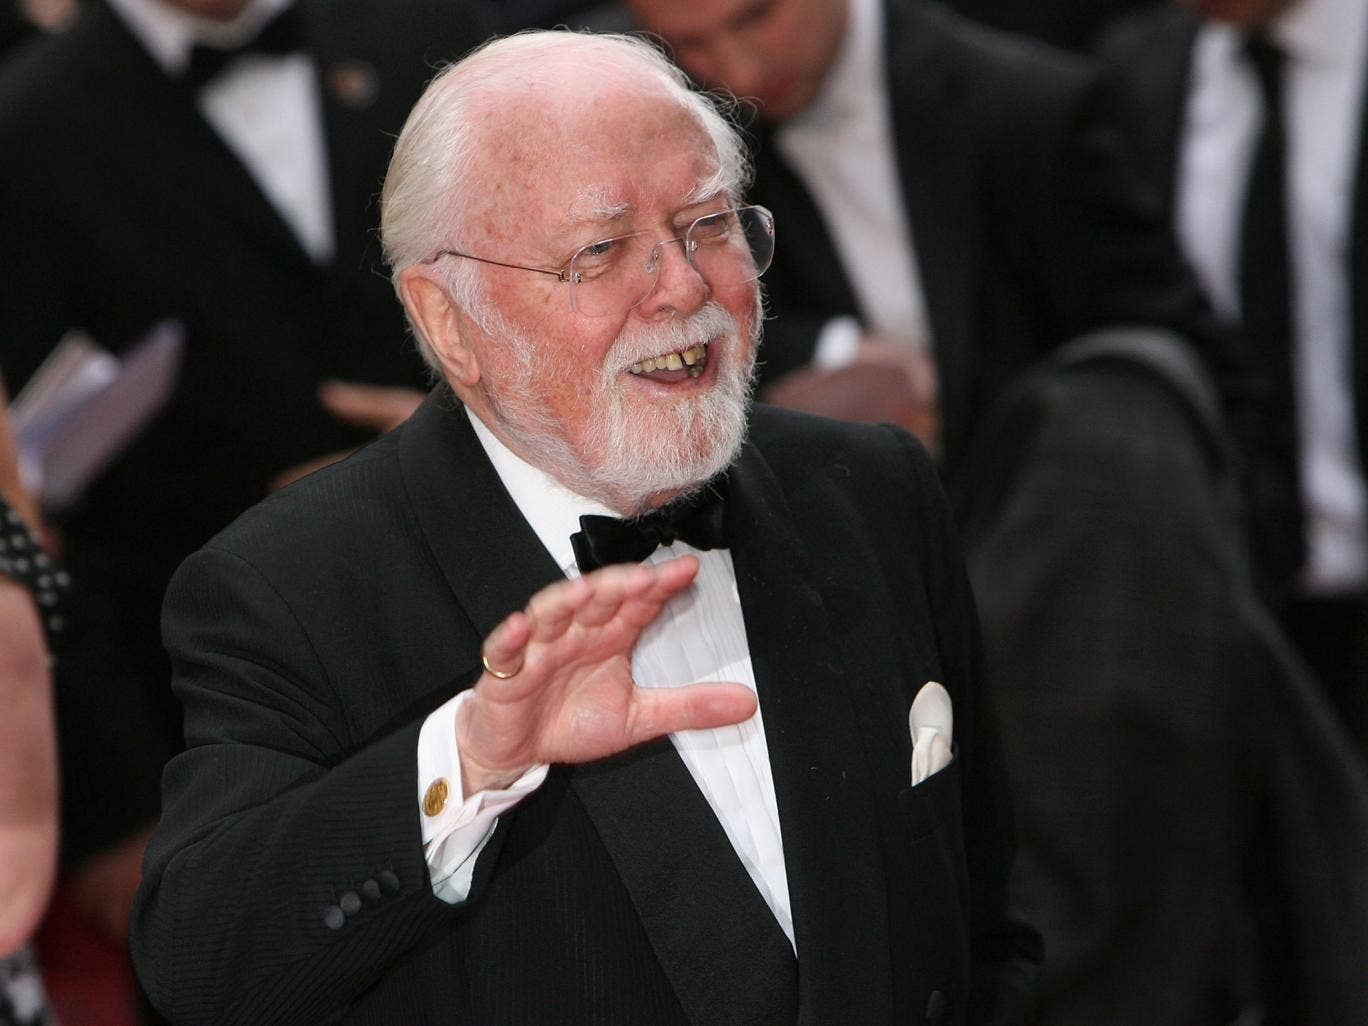 Lord Richard Attenborough attends the Galaxy British Book Awards held at the Grosvenor House Hotel in 2008